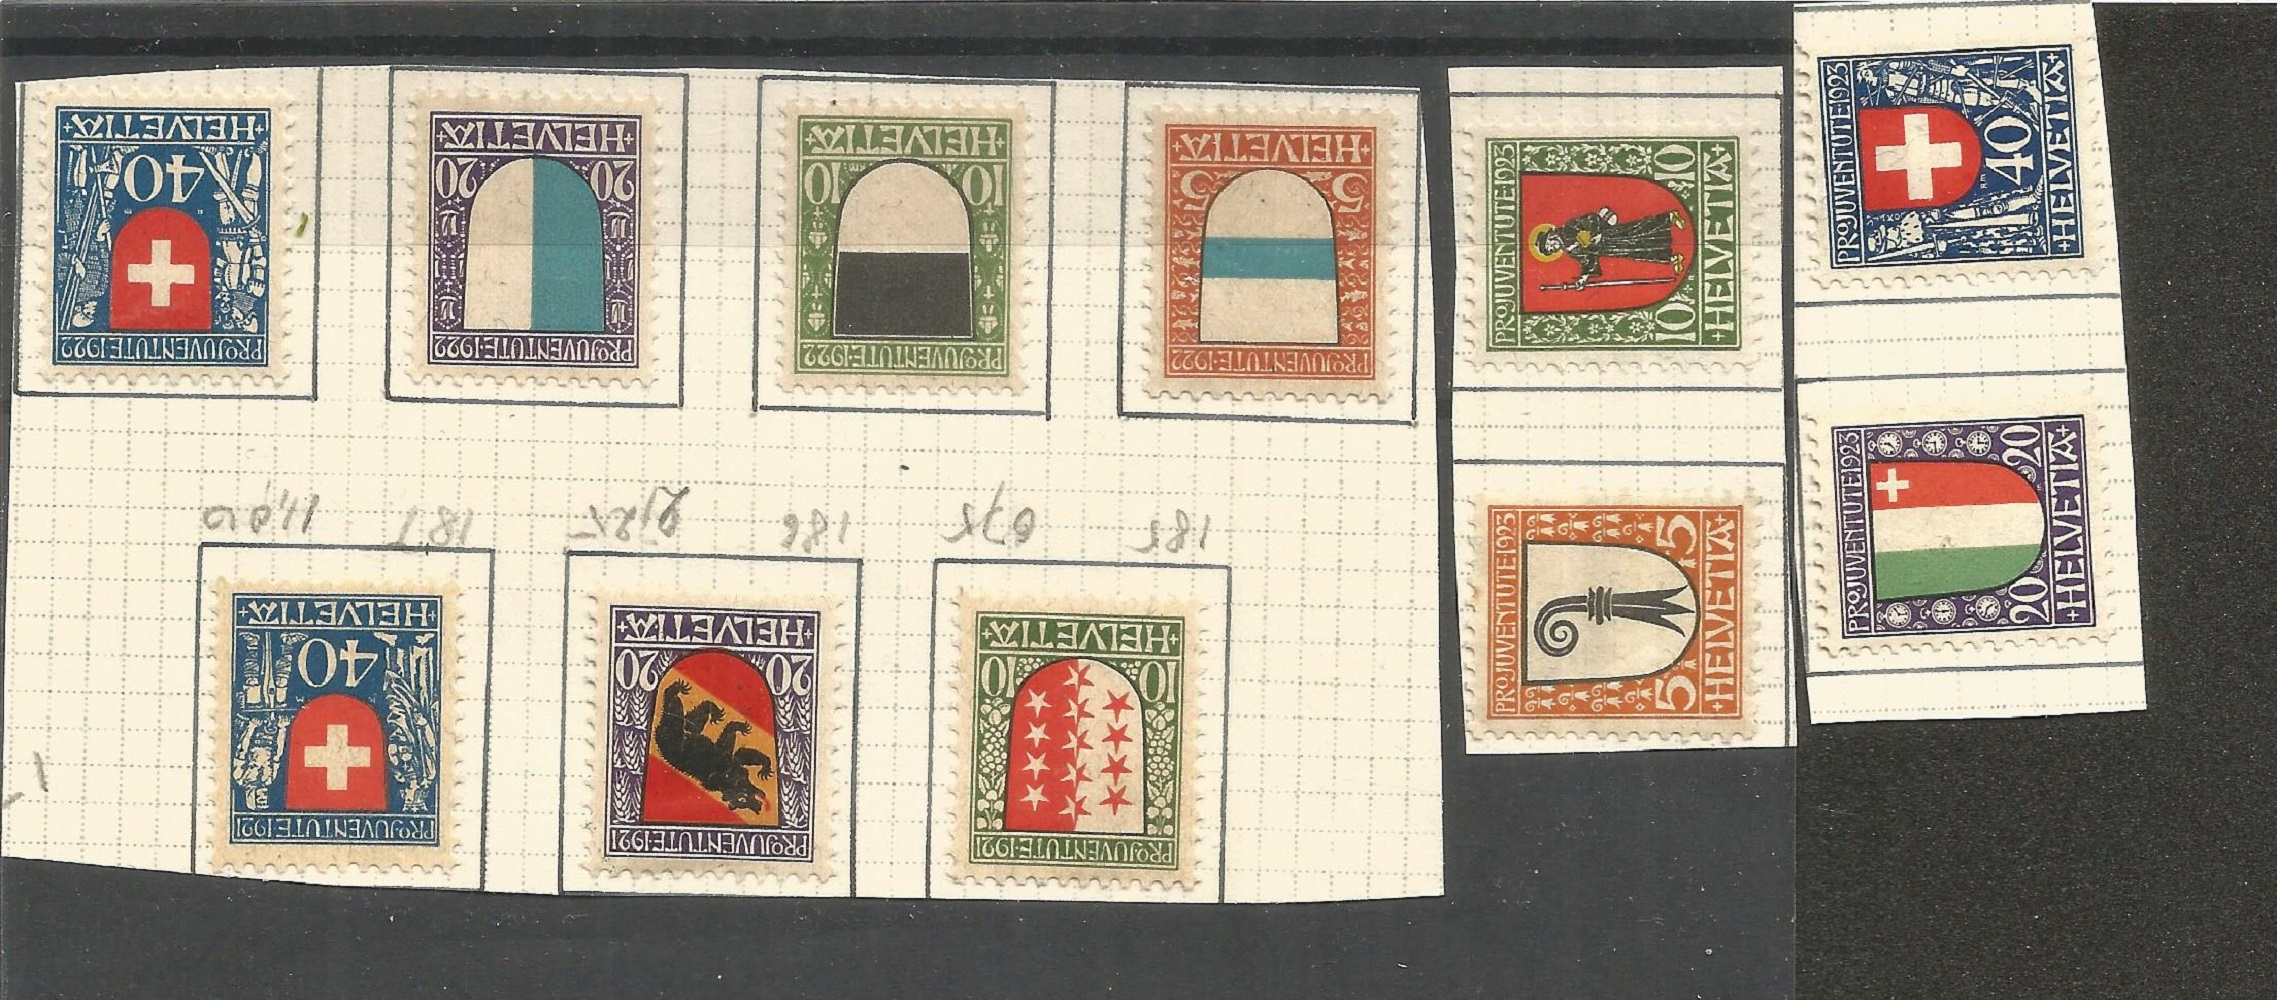 Swiss stamp collection. Childrens fund, projuventute charity stamps. All mint. J/17-J/19, J/20-J/23,